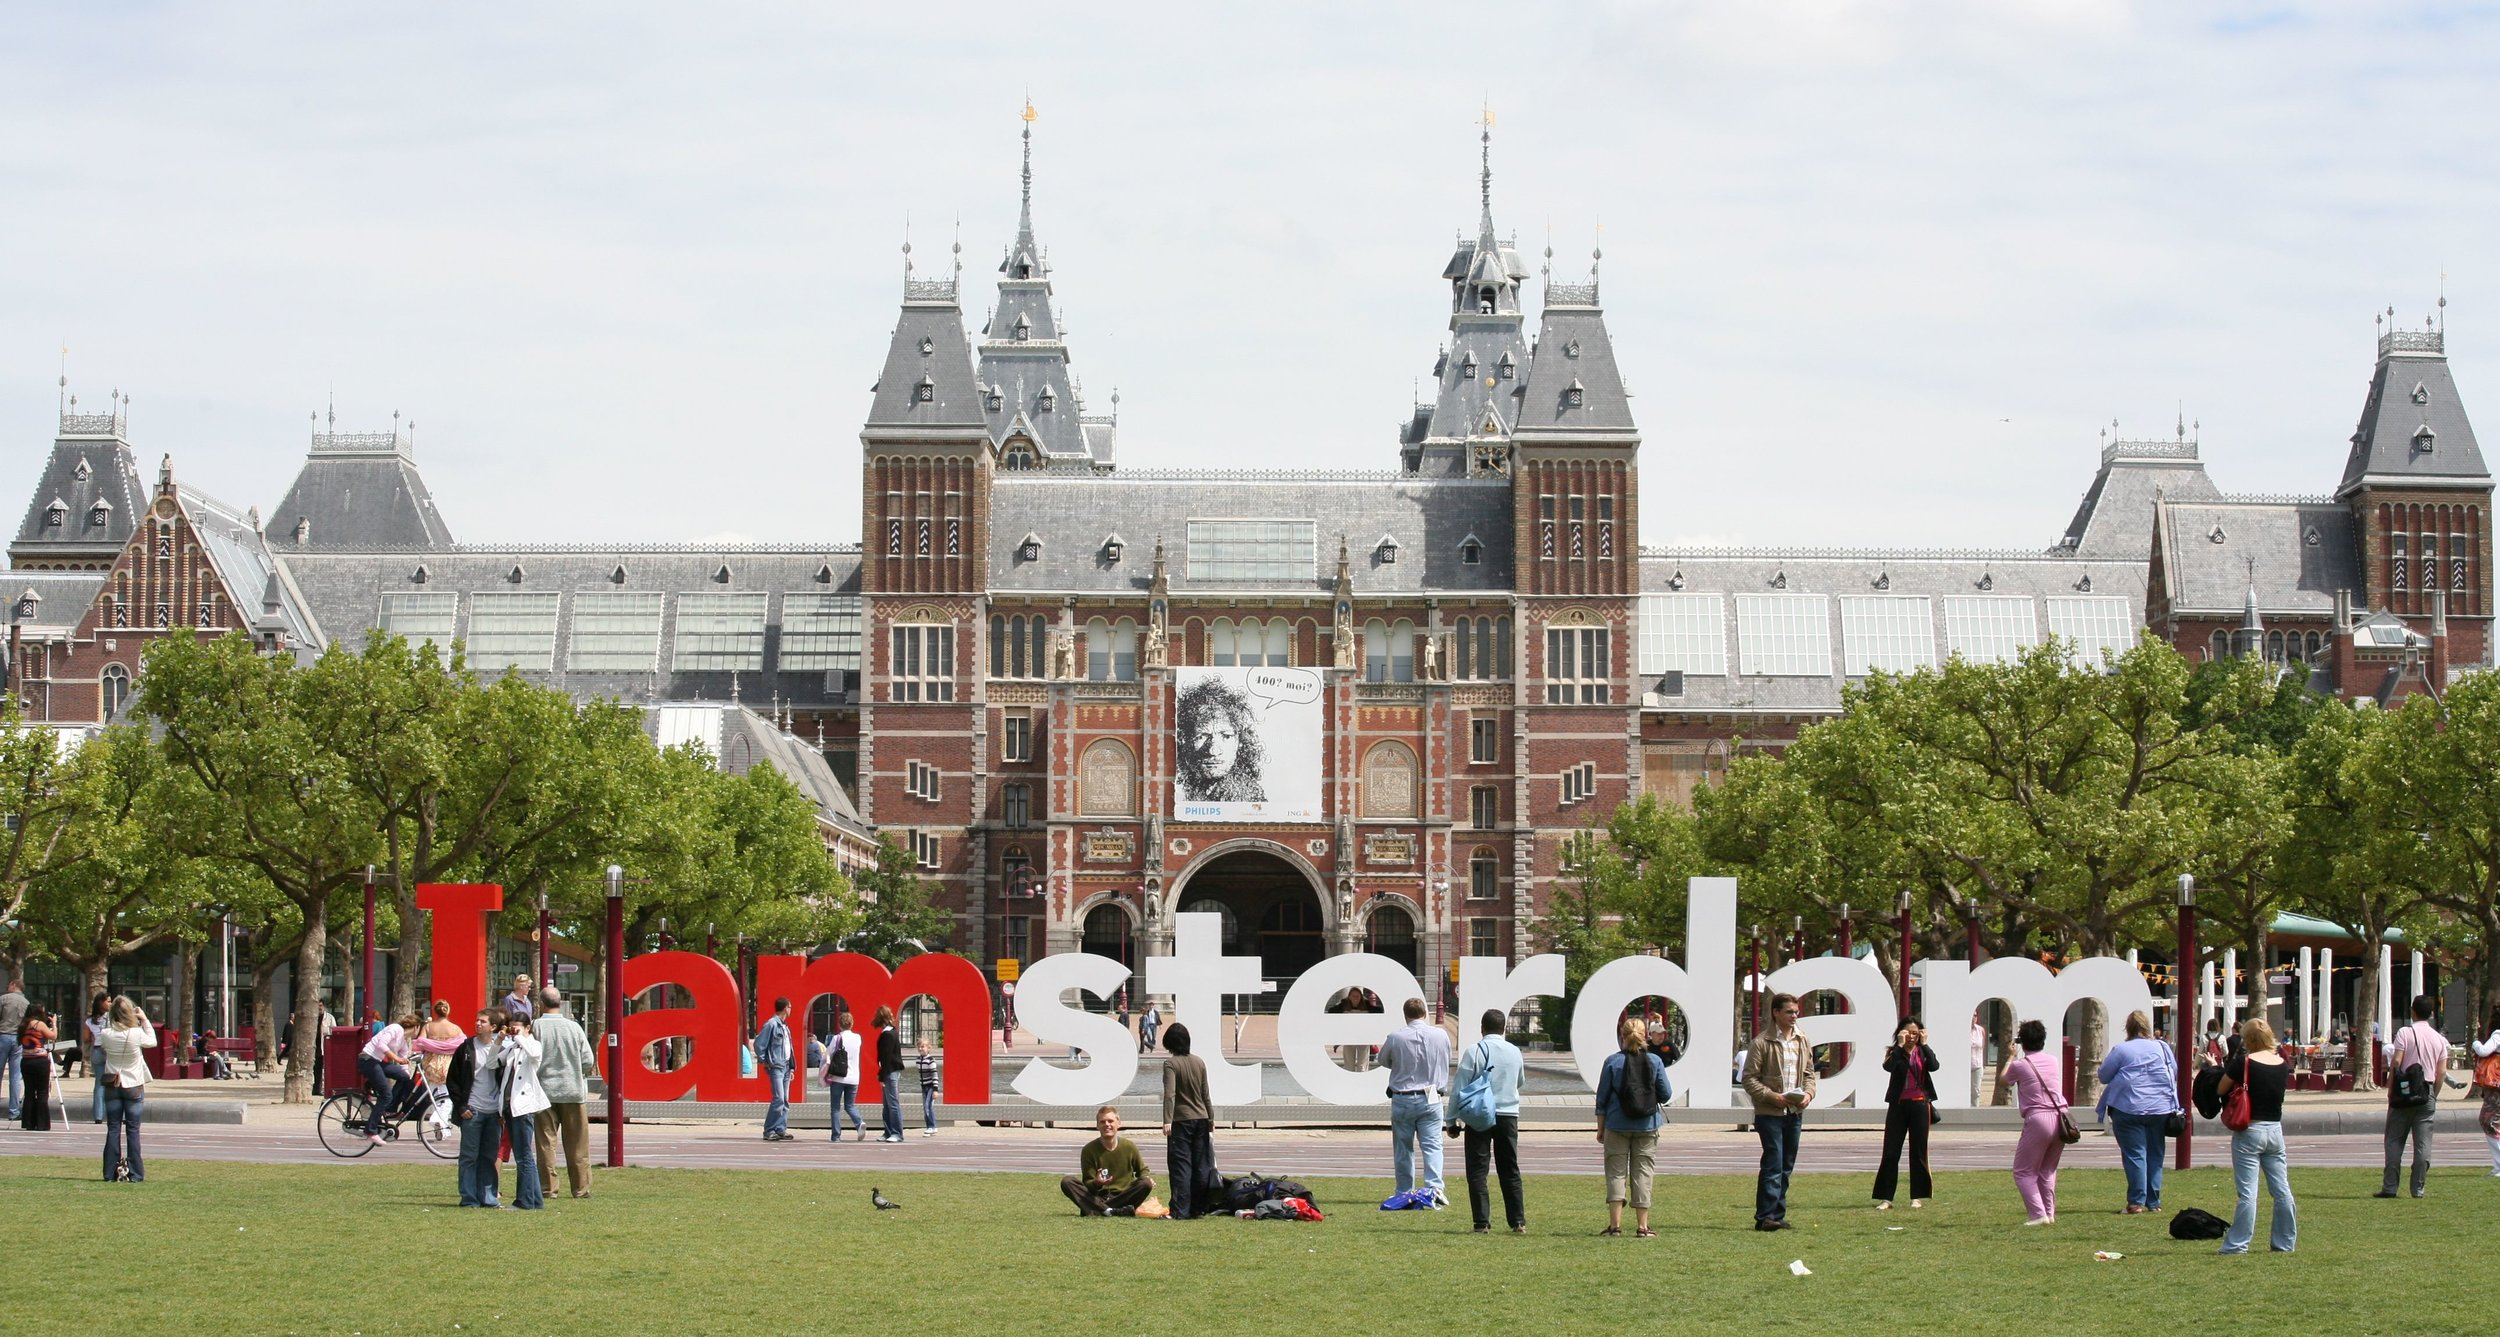 Kessels Kramer's 'I Amsterdam' campaign celebrates Amsterdam's citizens in all their diversity.